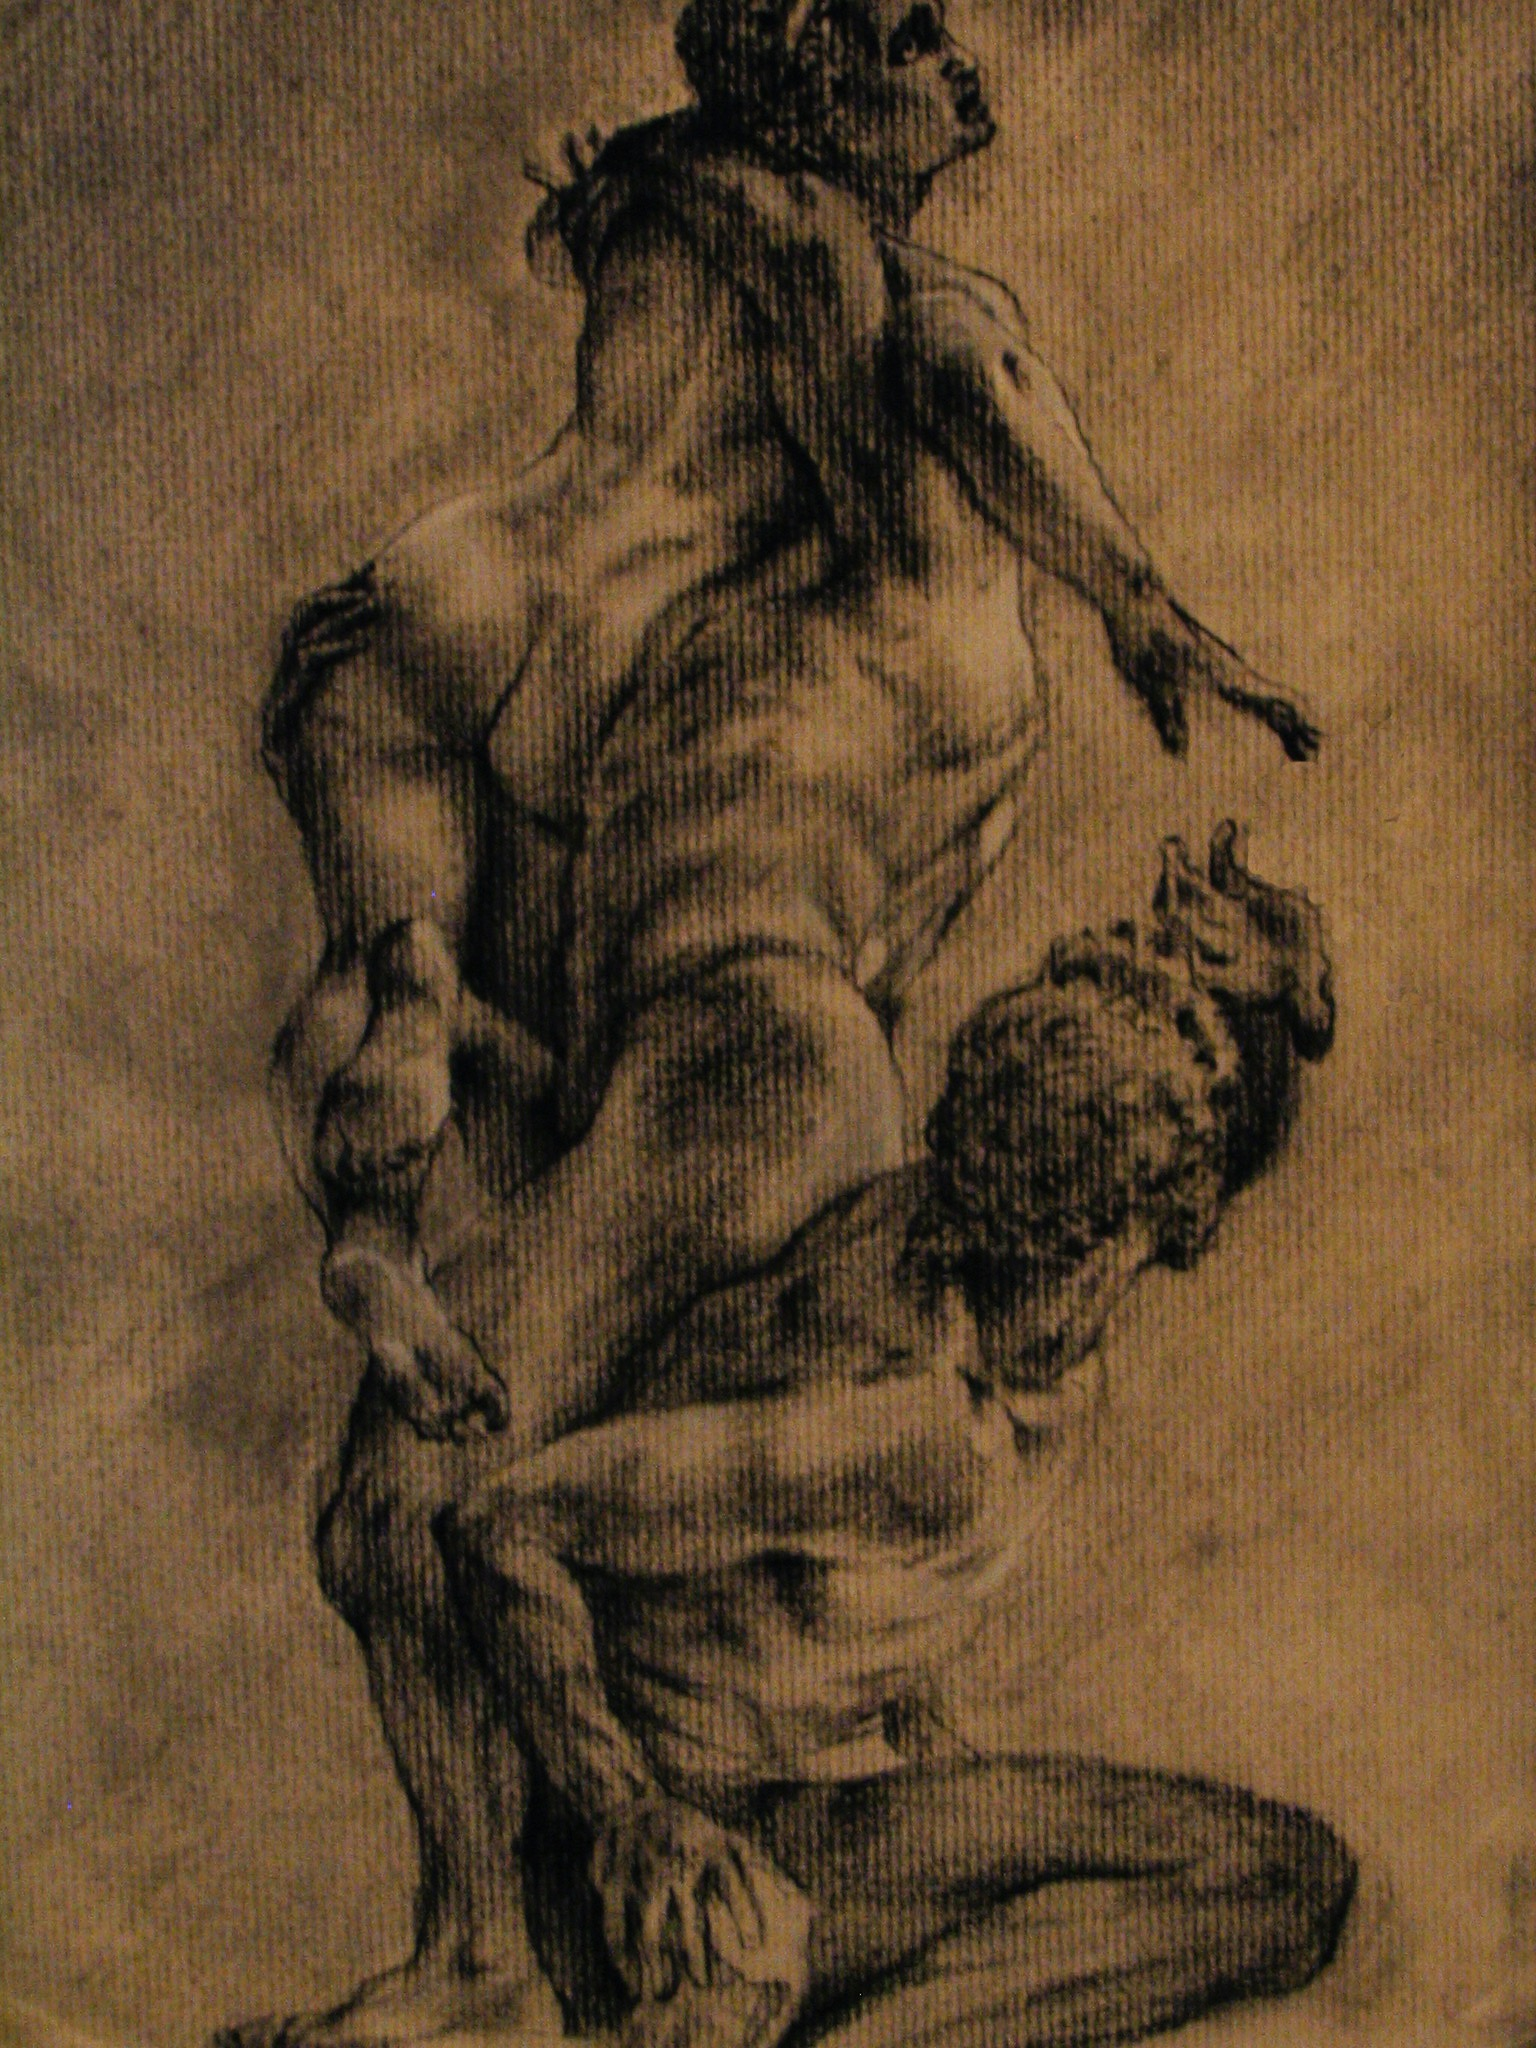 Giambologna, The Rape of the Sabine - Loggia Dei Lanzi, Florence   9 x 12  Charcoal on Paper  2007